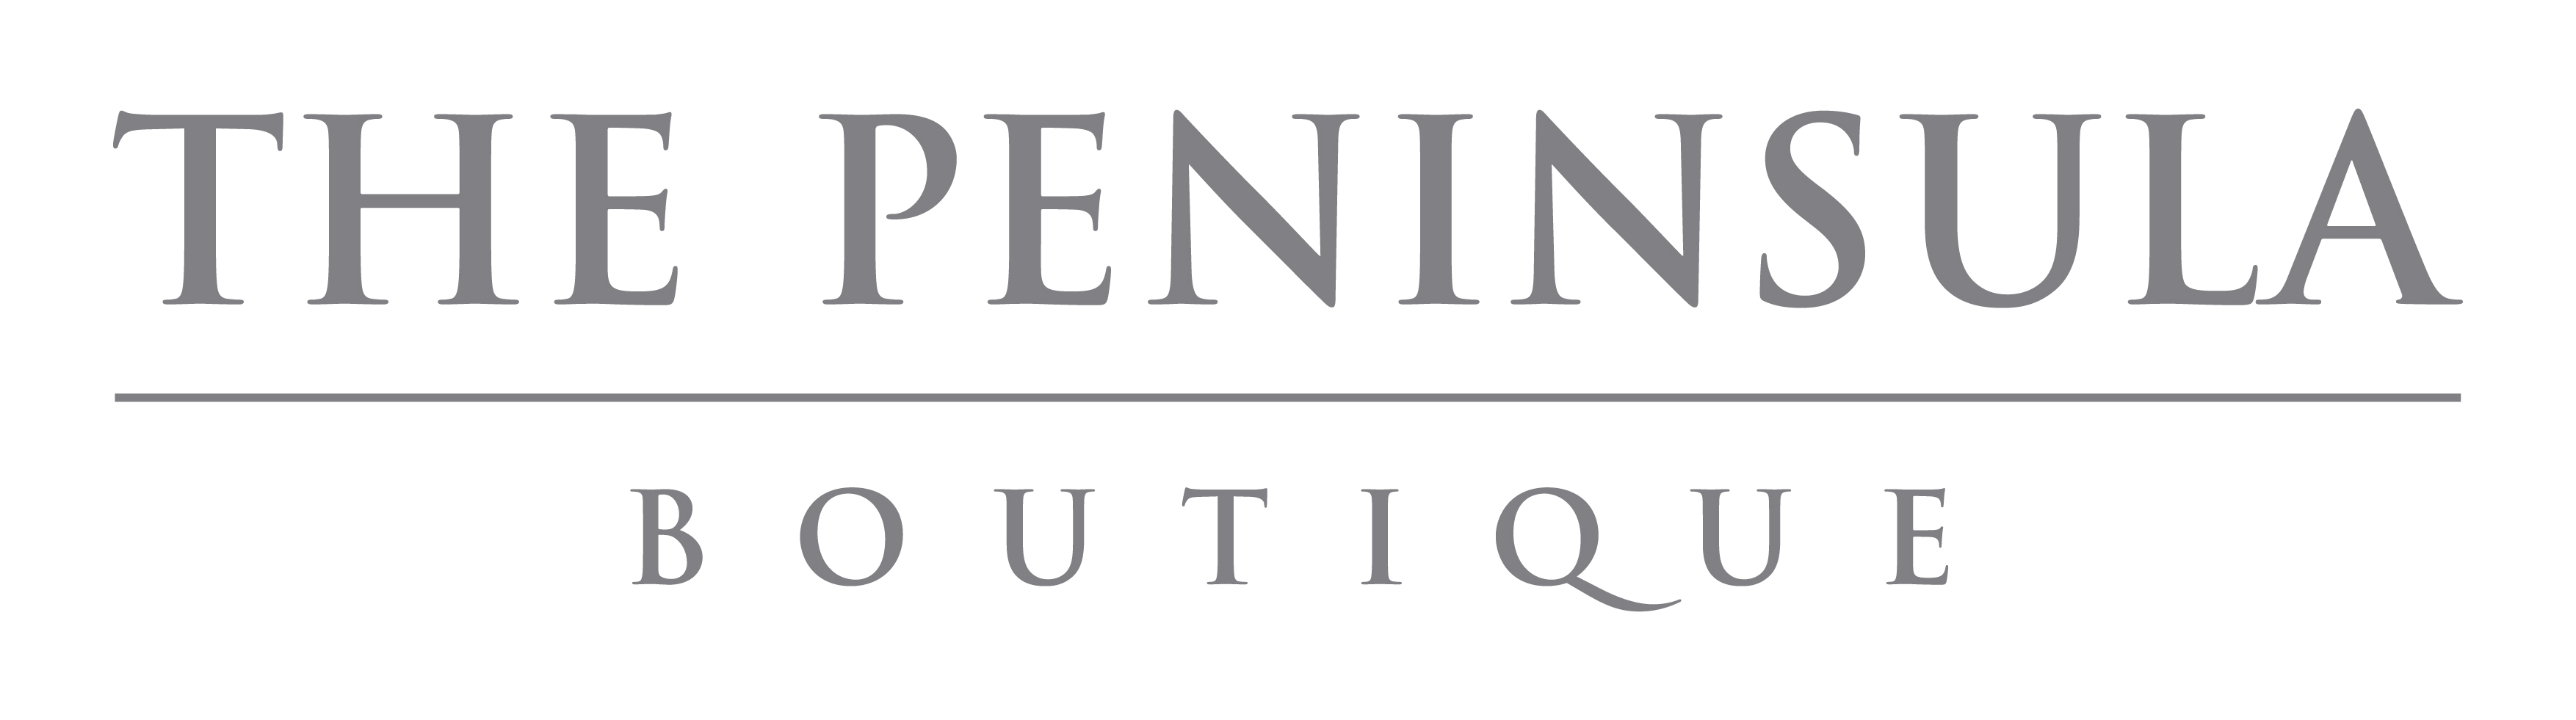 The Peninsula Boutique Logo - English